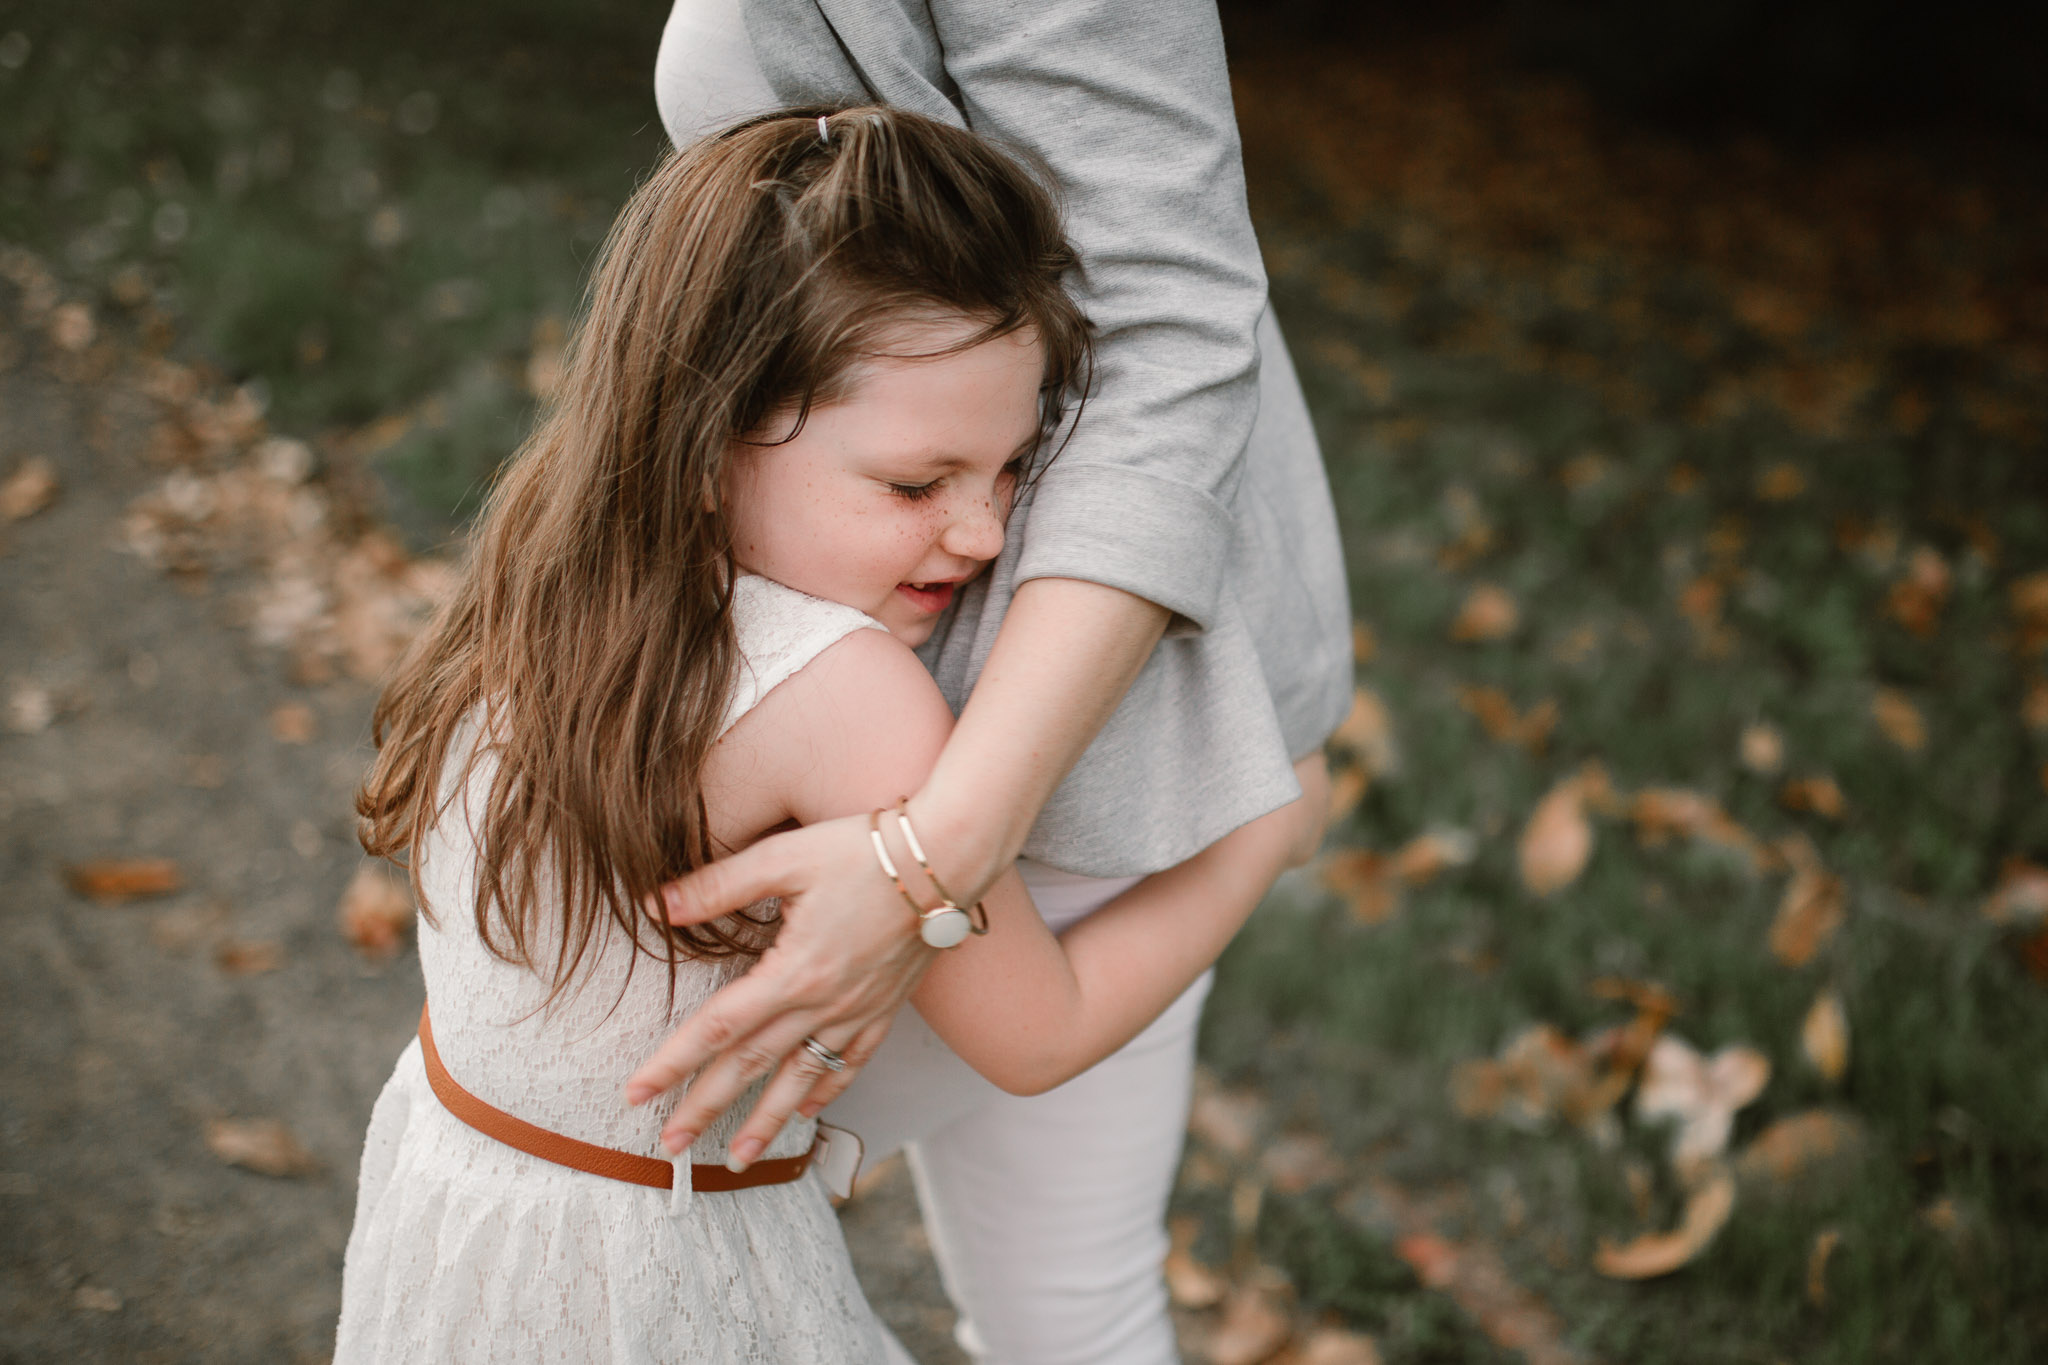 Young girl gives her mom a big hug at Morven Park in Leesburg, Virginia